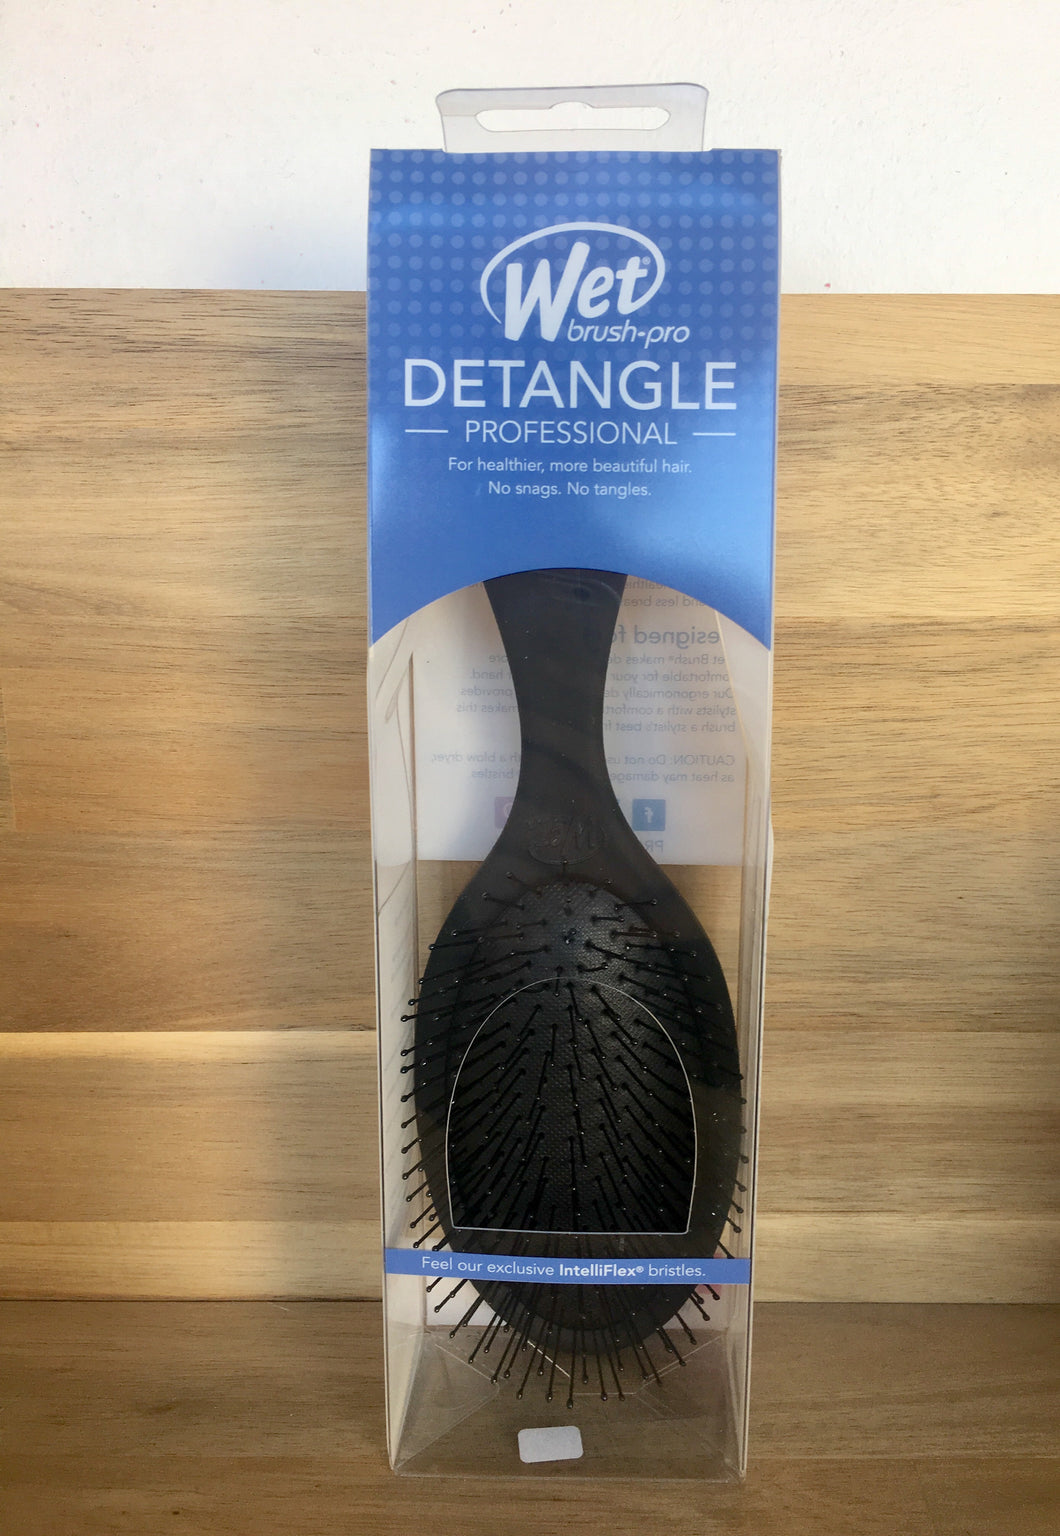 Wet Brush Pro Detangle Brush